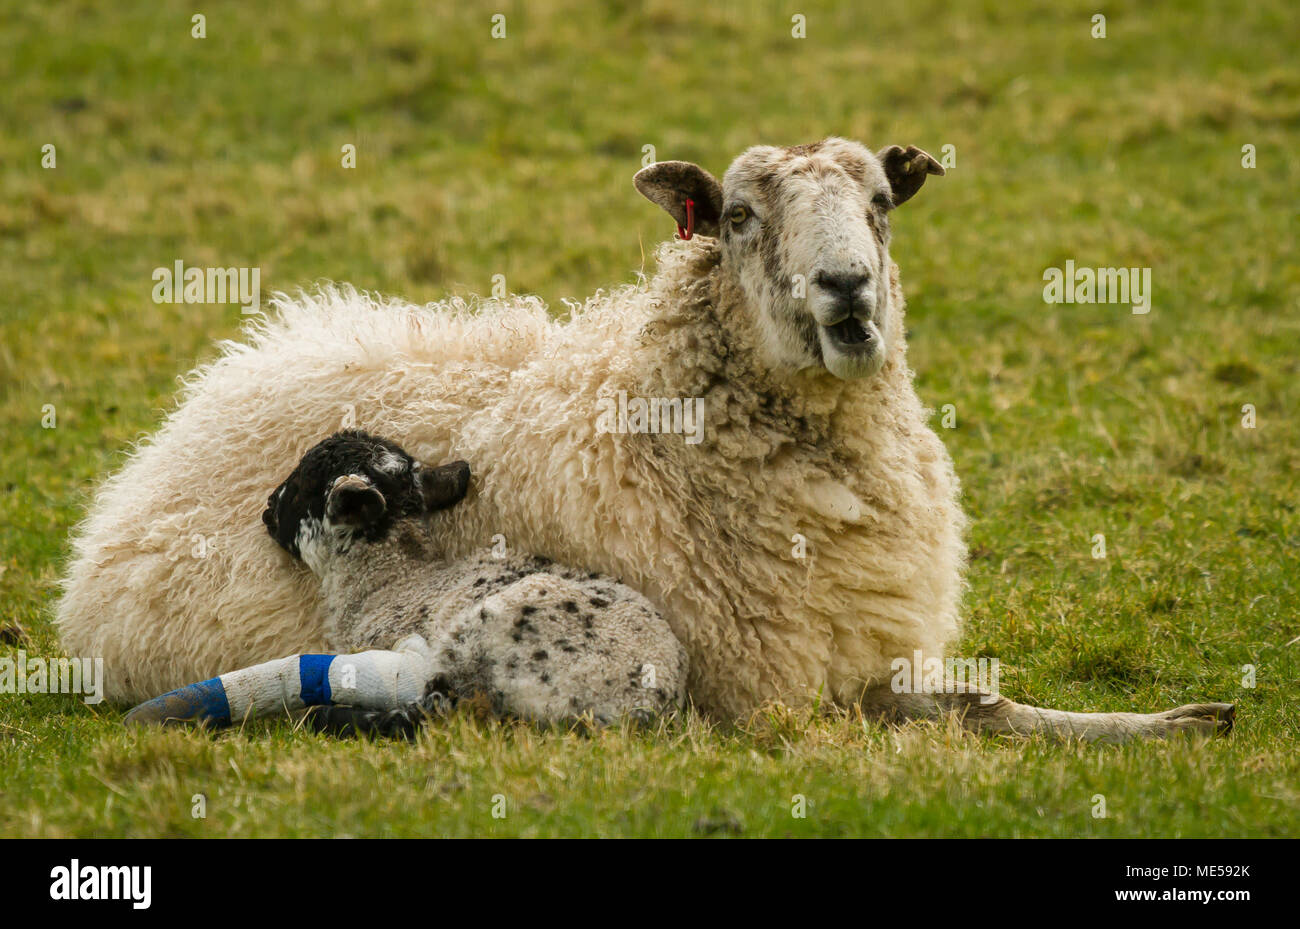 Swaledale Ewe, sheep with her lamb which has a broken leg, Yorkshire Dales, UK.  Ewe is facing right and laid down in green grass.  Landscape - Stock Image